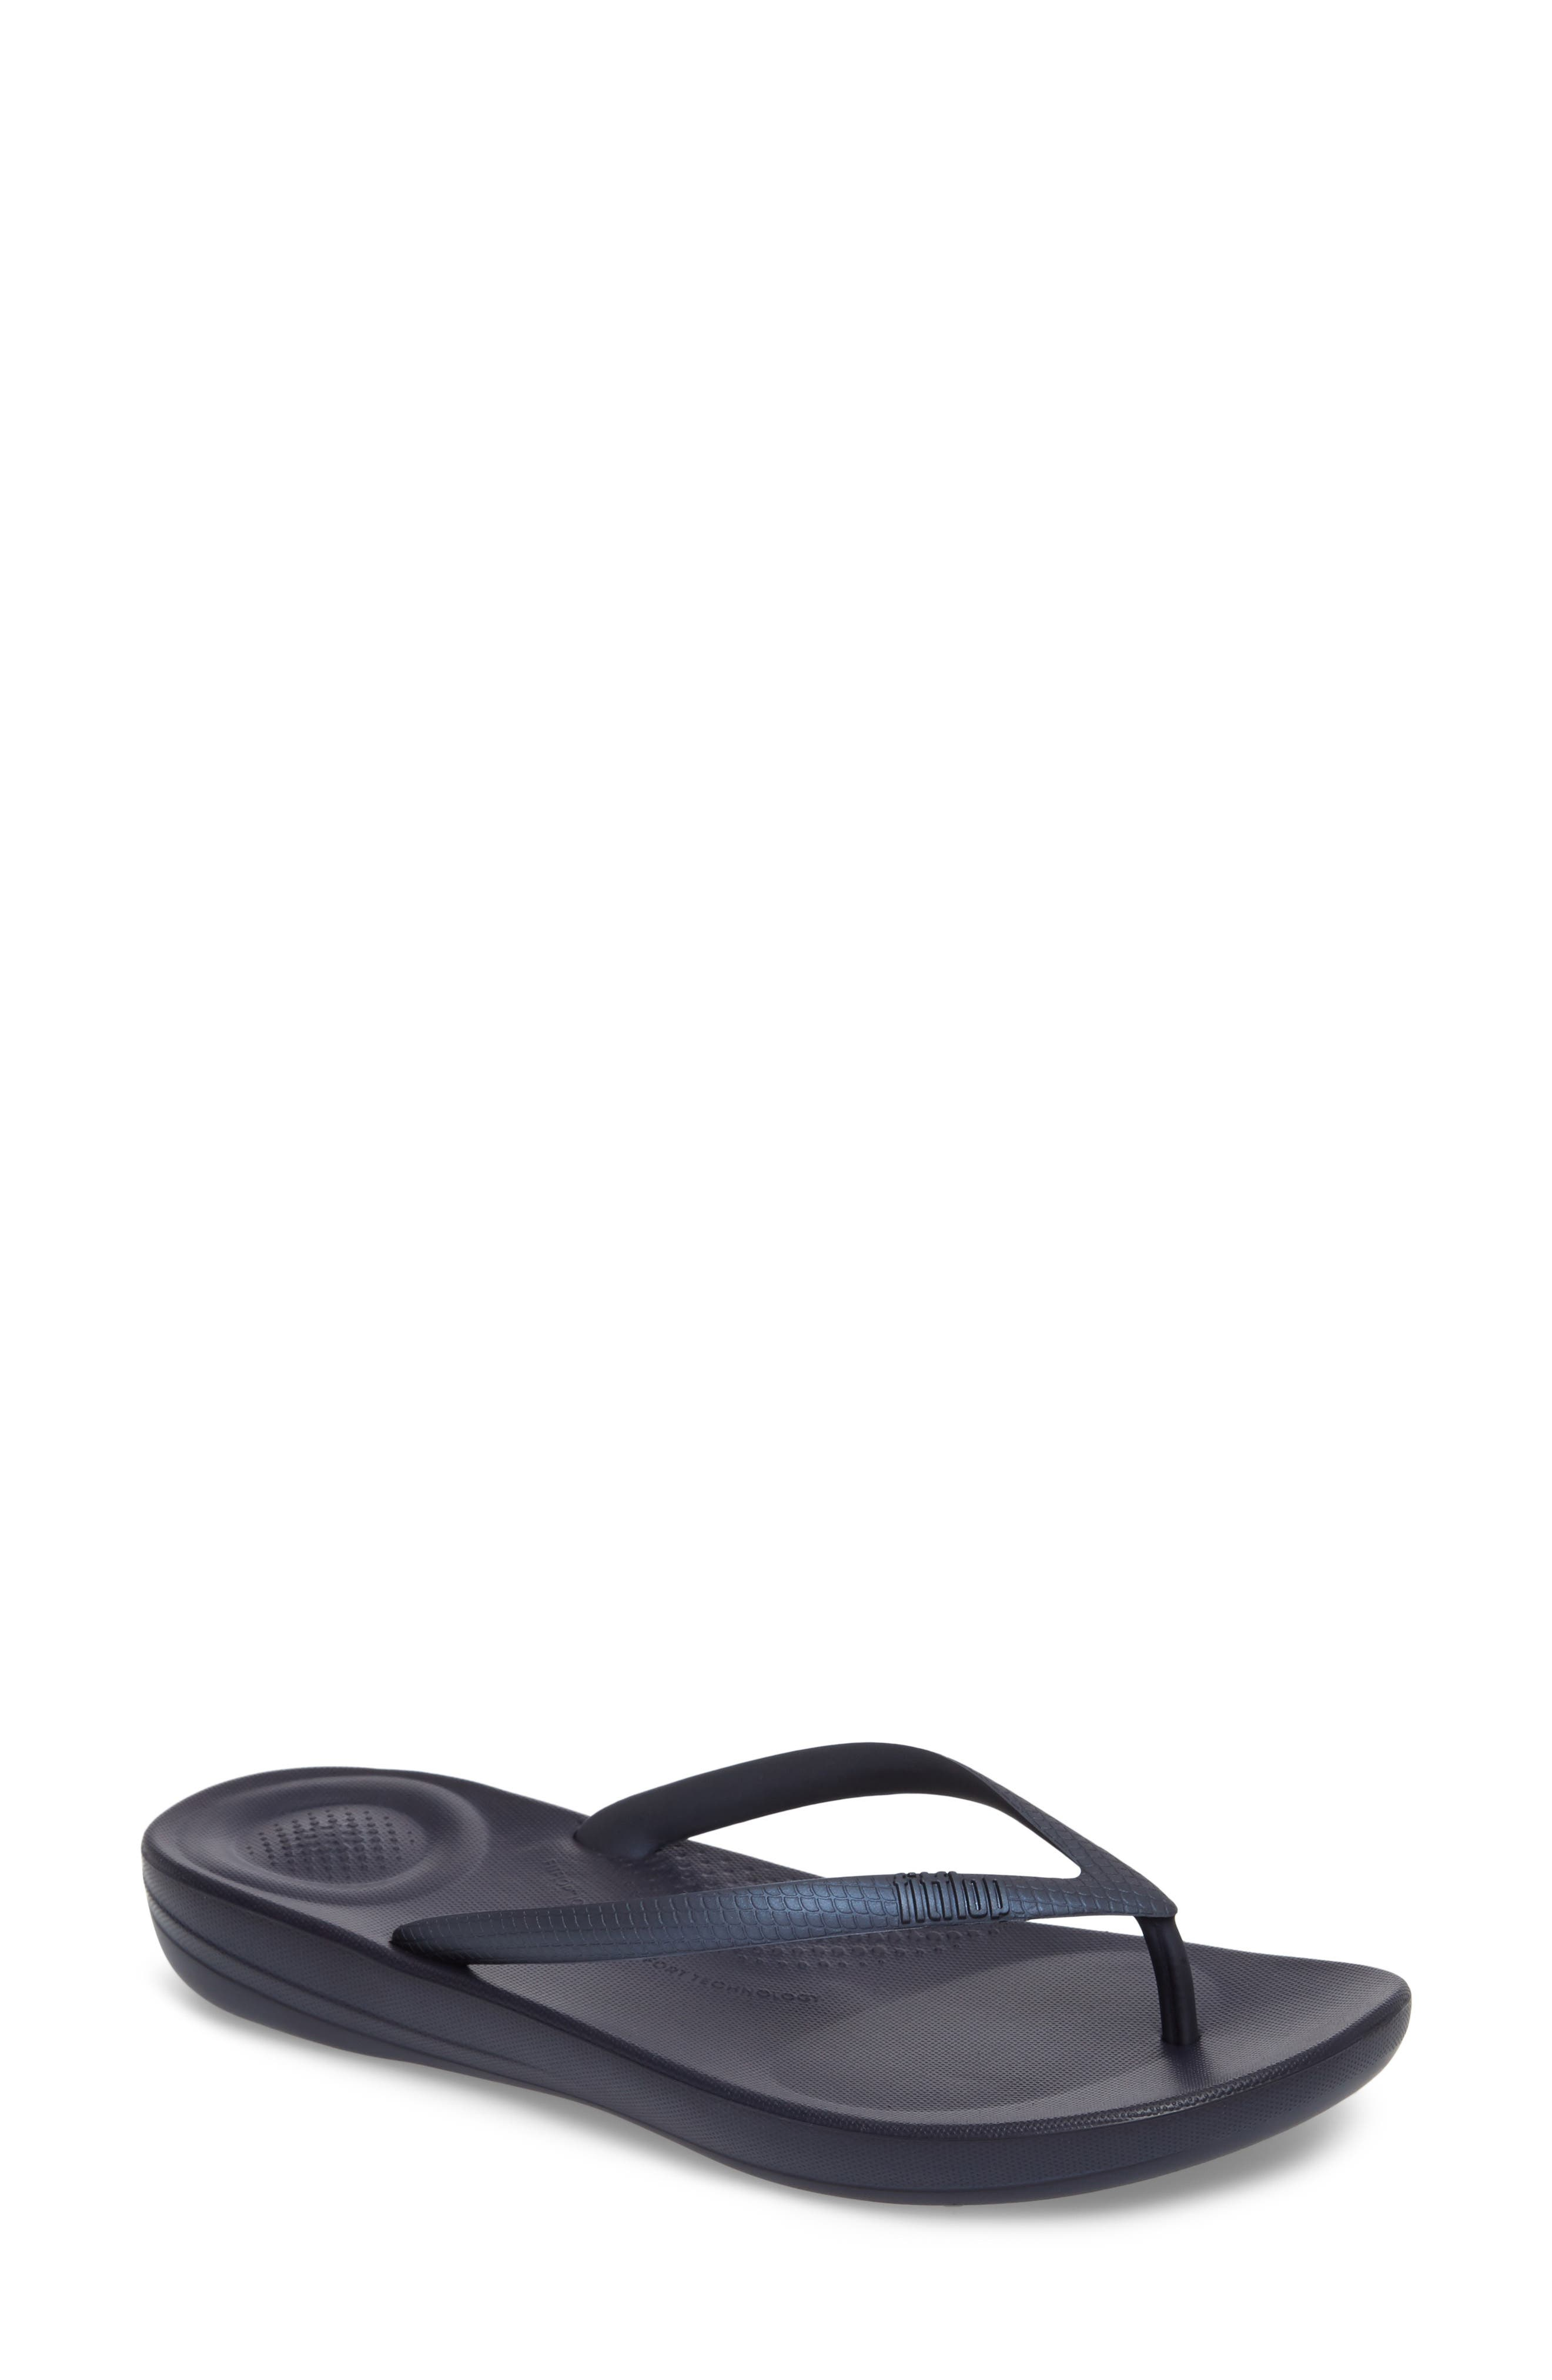 Alternate Image 1 Selected - FitFlop iQushion Flip Flop (Women)